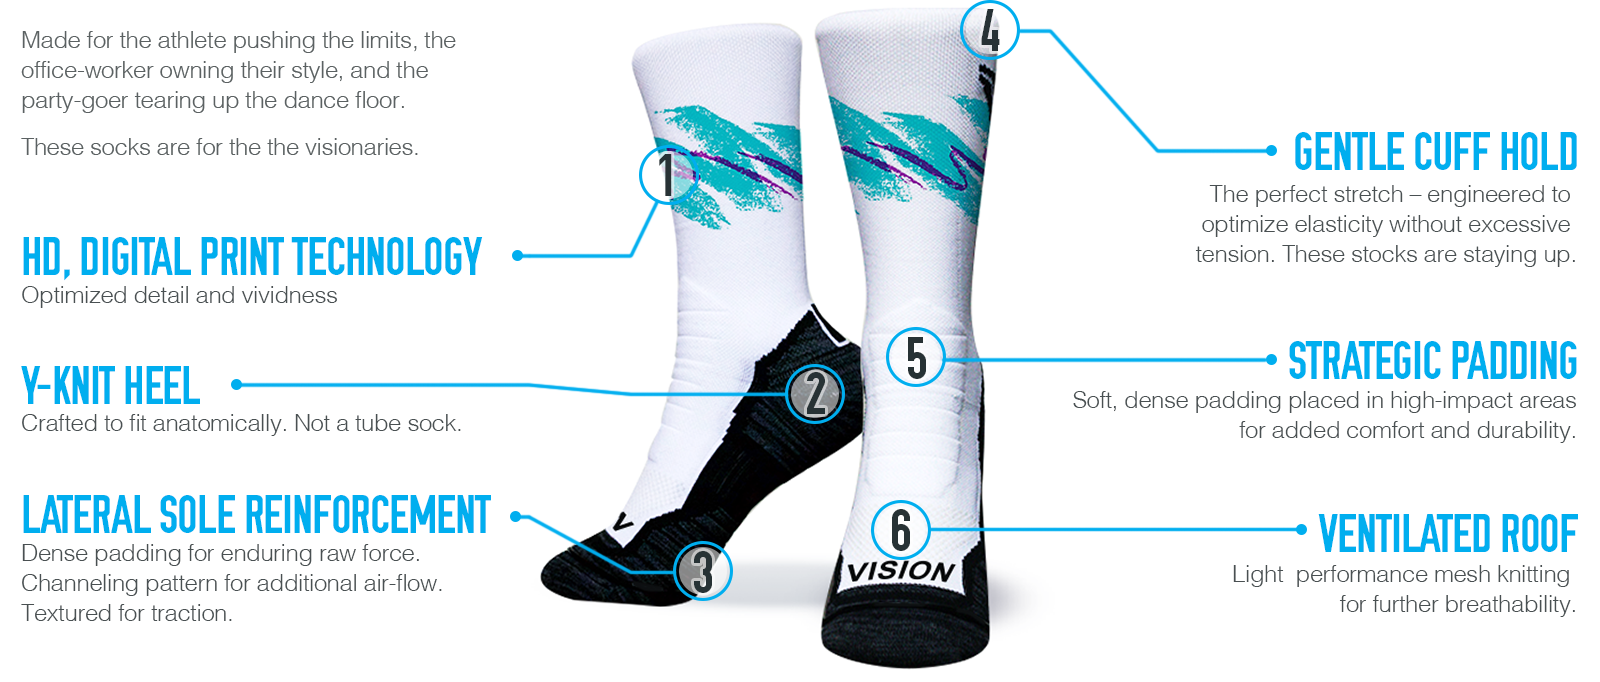 Performance sock specs